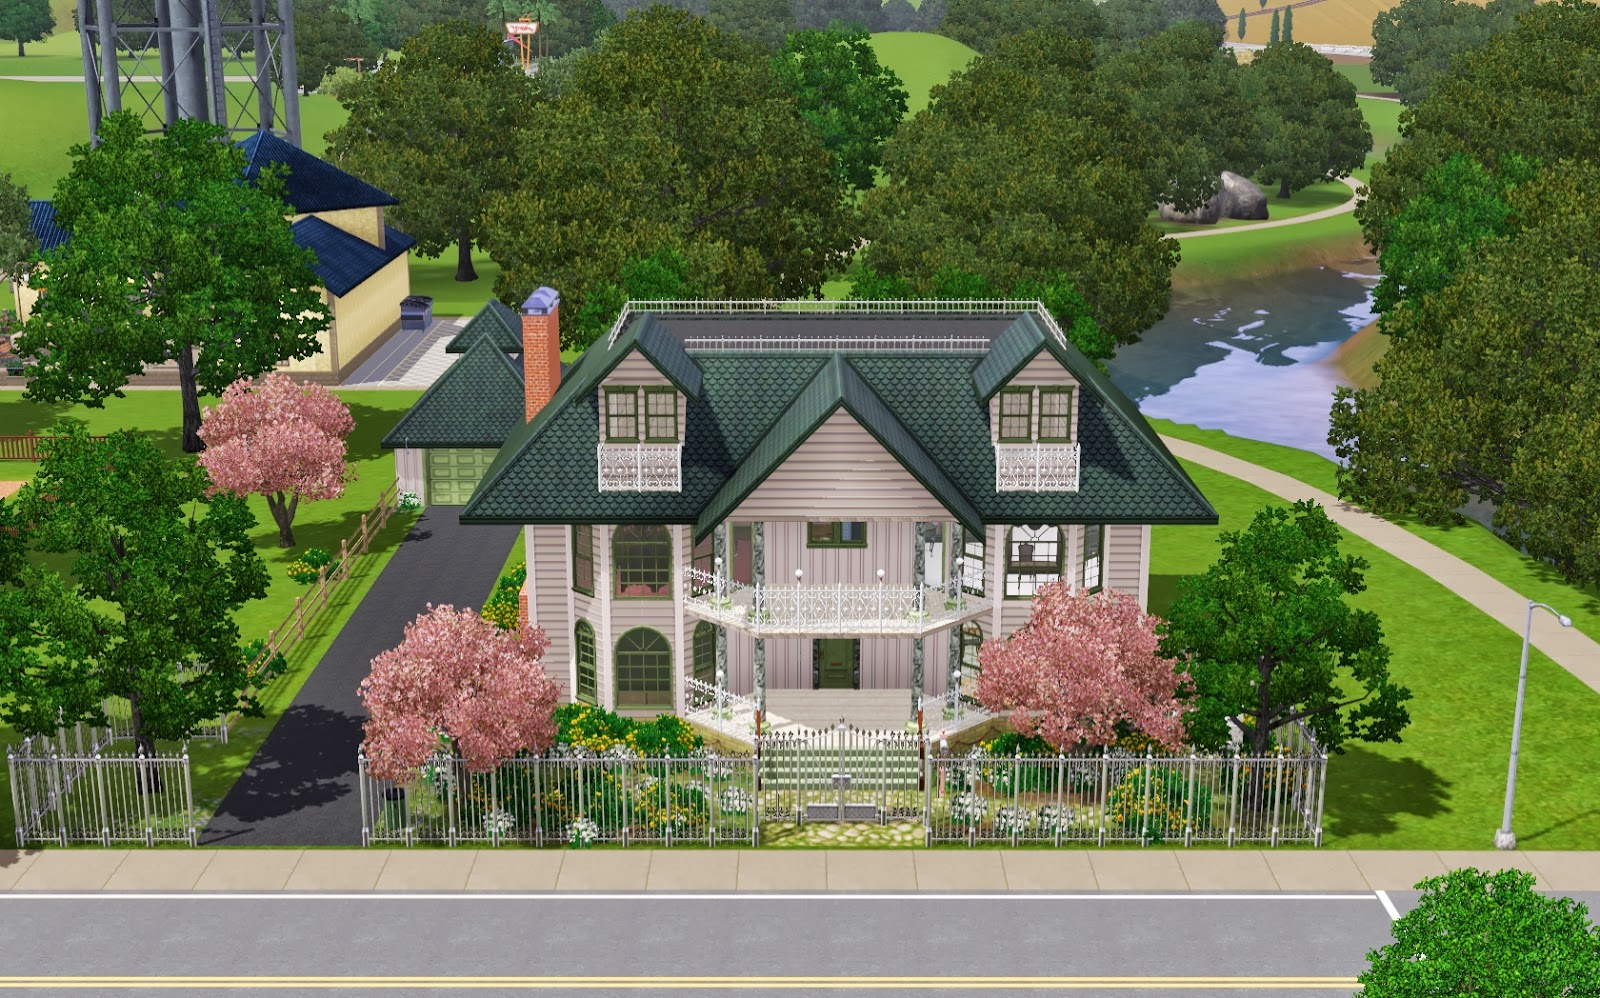 Summer 39 S Little Sims 3 Garden Riverview List Of Houses